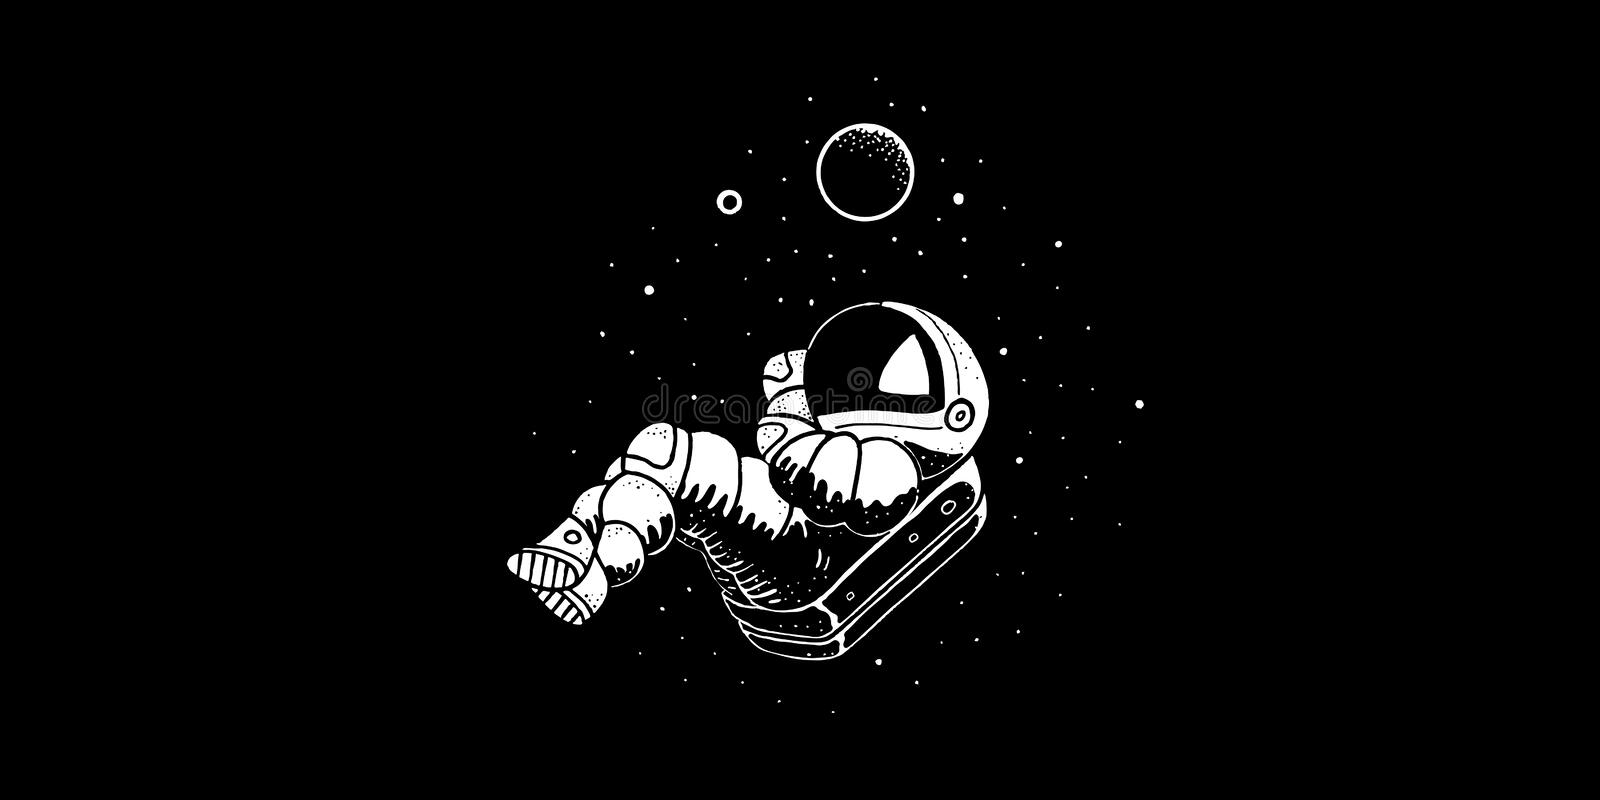 Astronaut flying in cosmos vector illustration. Funny spaceman hand drawn. Banner